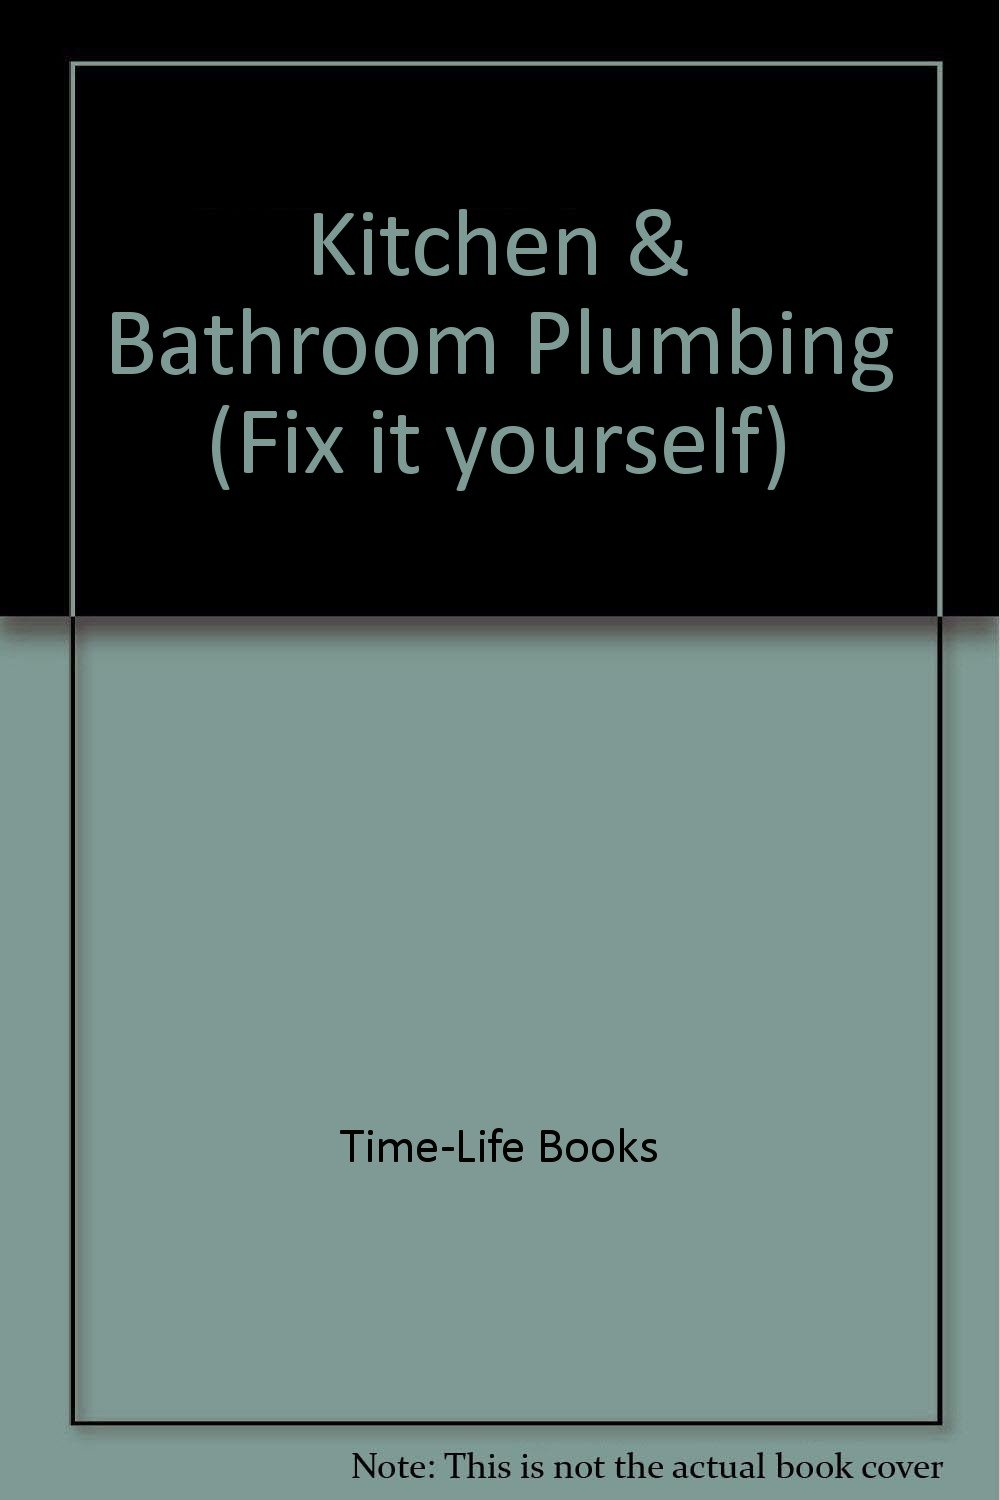 Kitchen bathroom plumbing fix it yourself time life books kitchen bathroom plumbing fix it yourself time life books 9780376019103 amazon books solutioingenieria Image collections